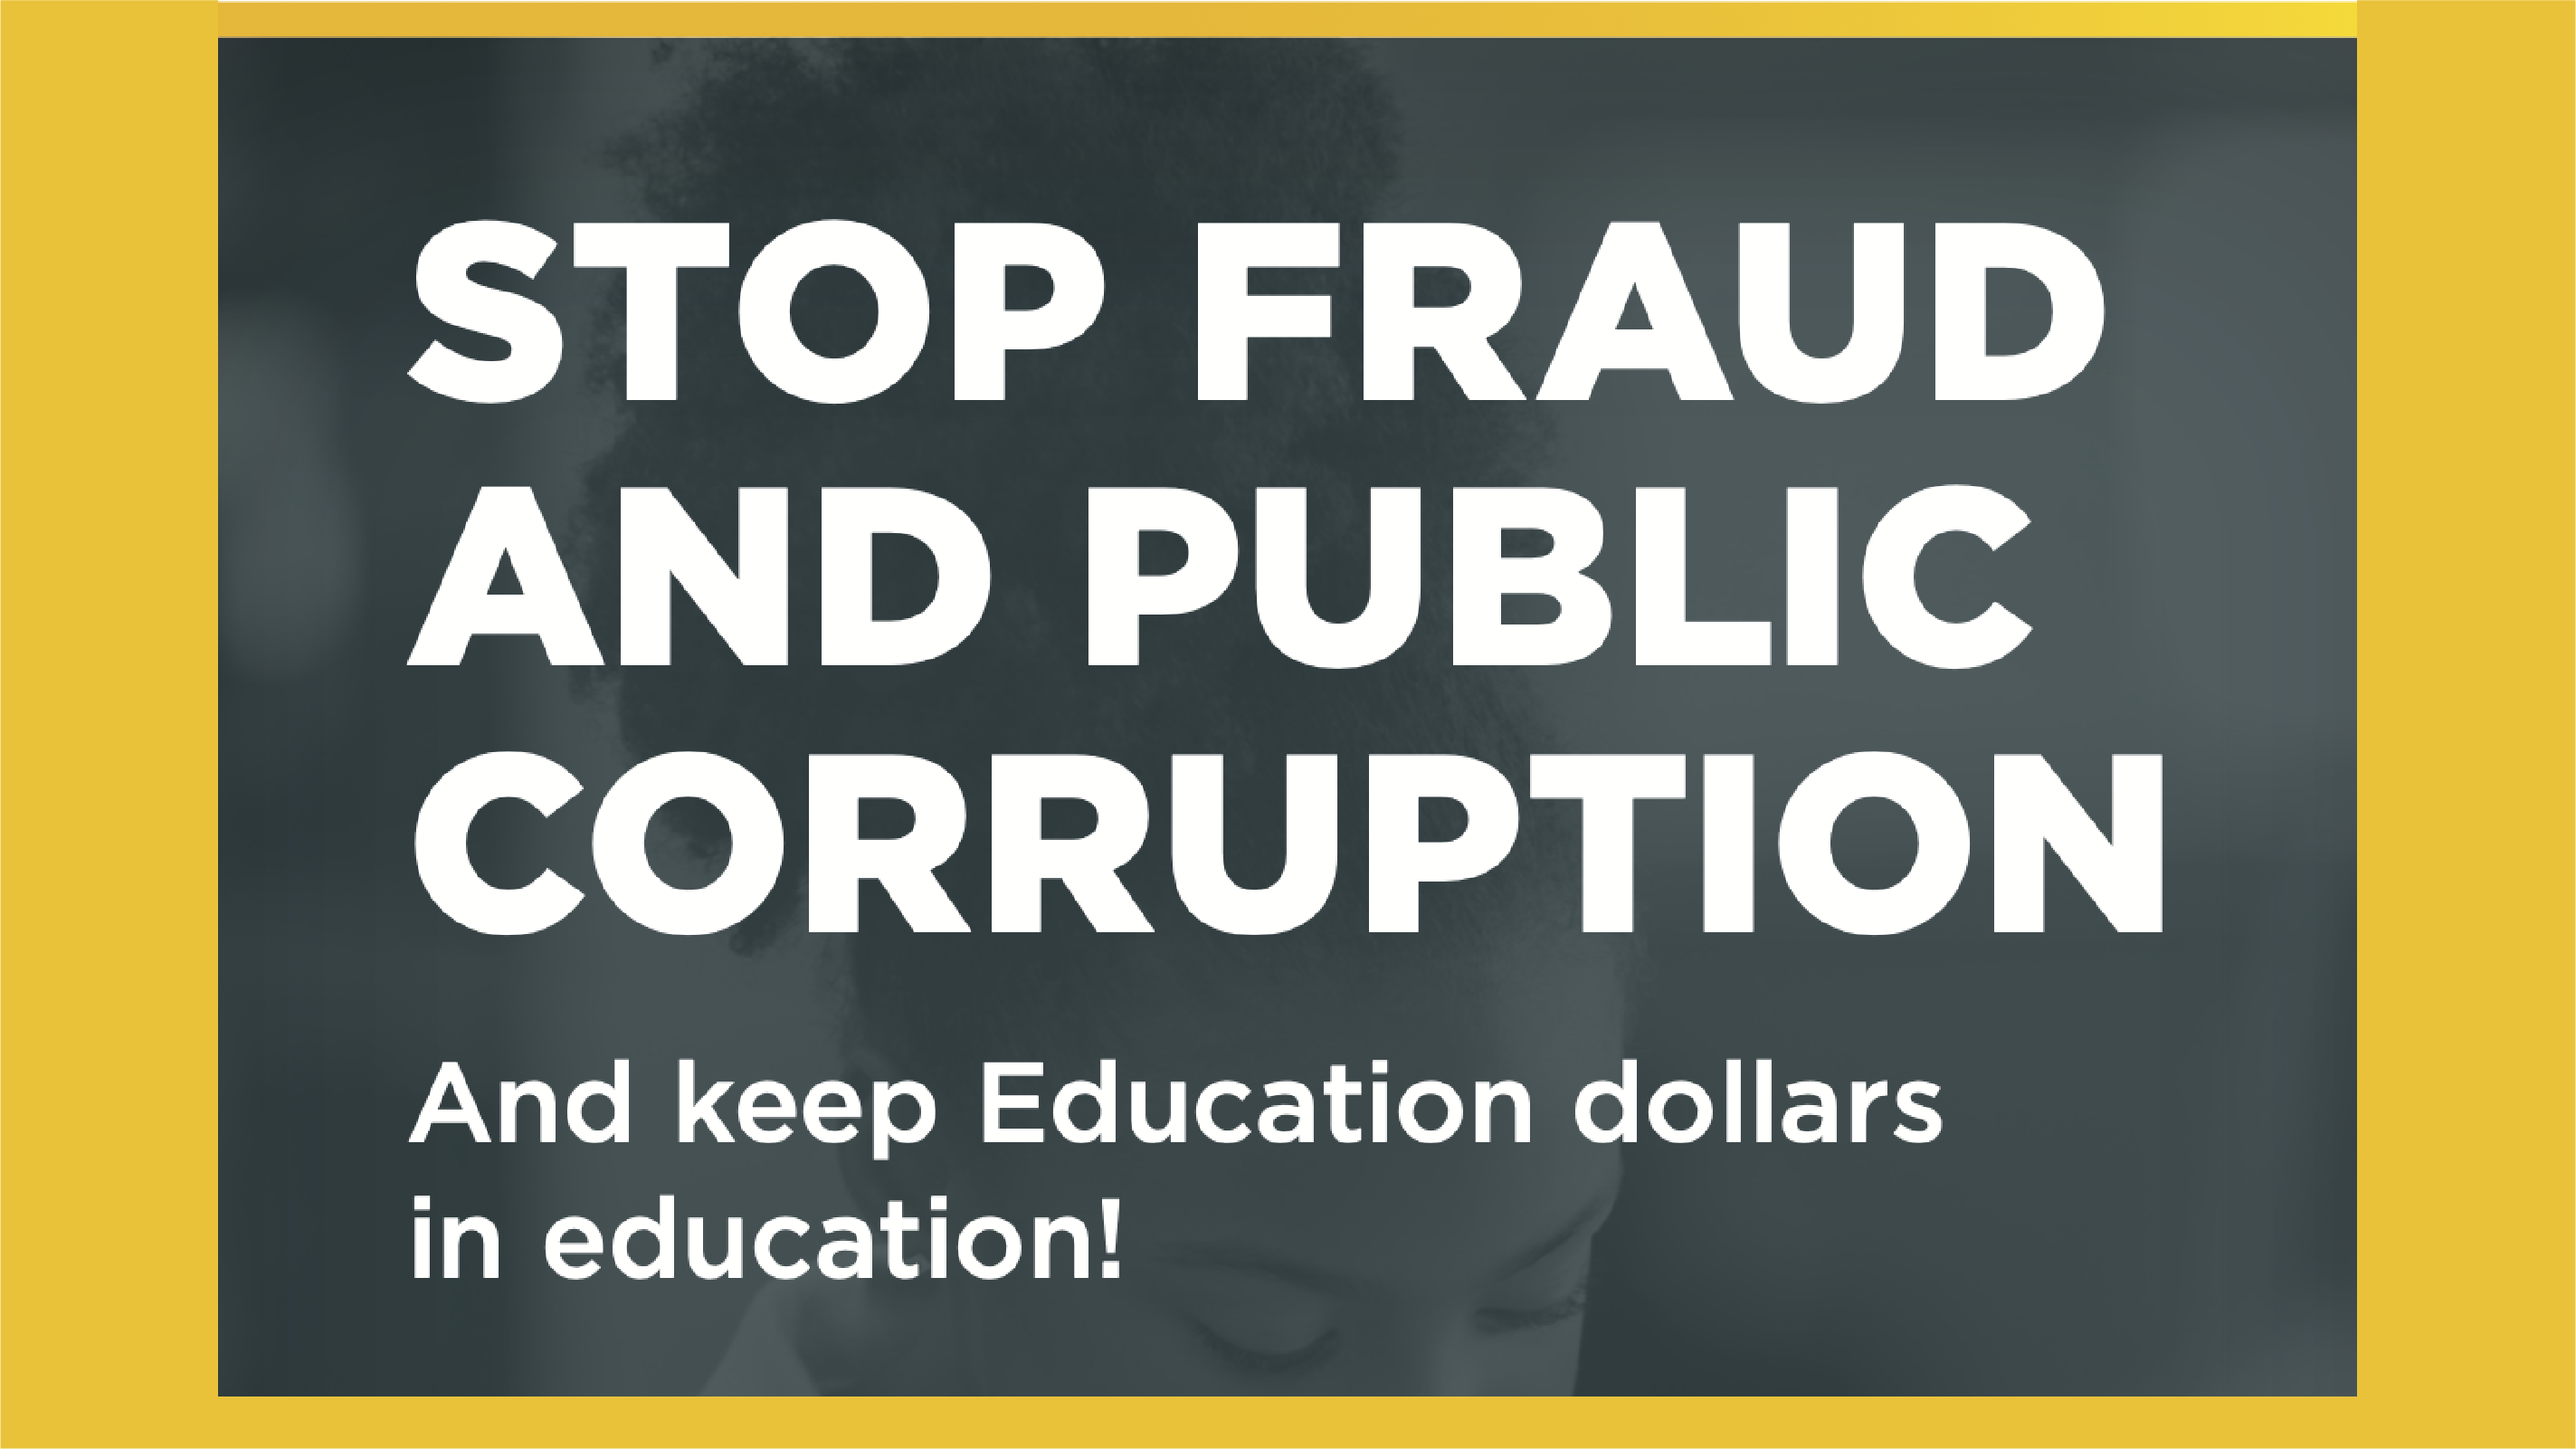 Report Fraud: Keep Education Dollars in Education